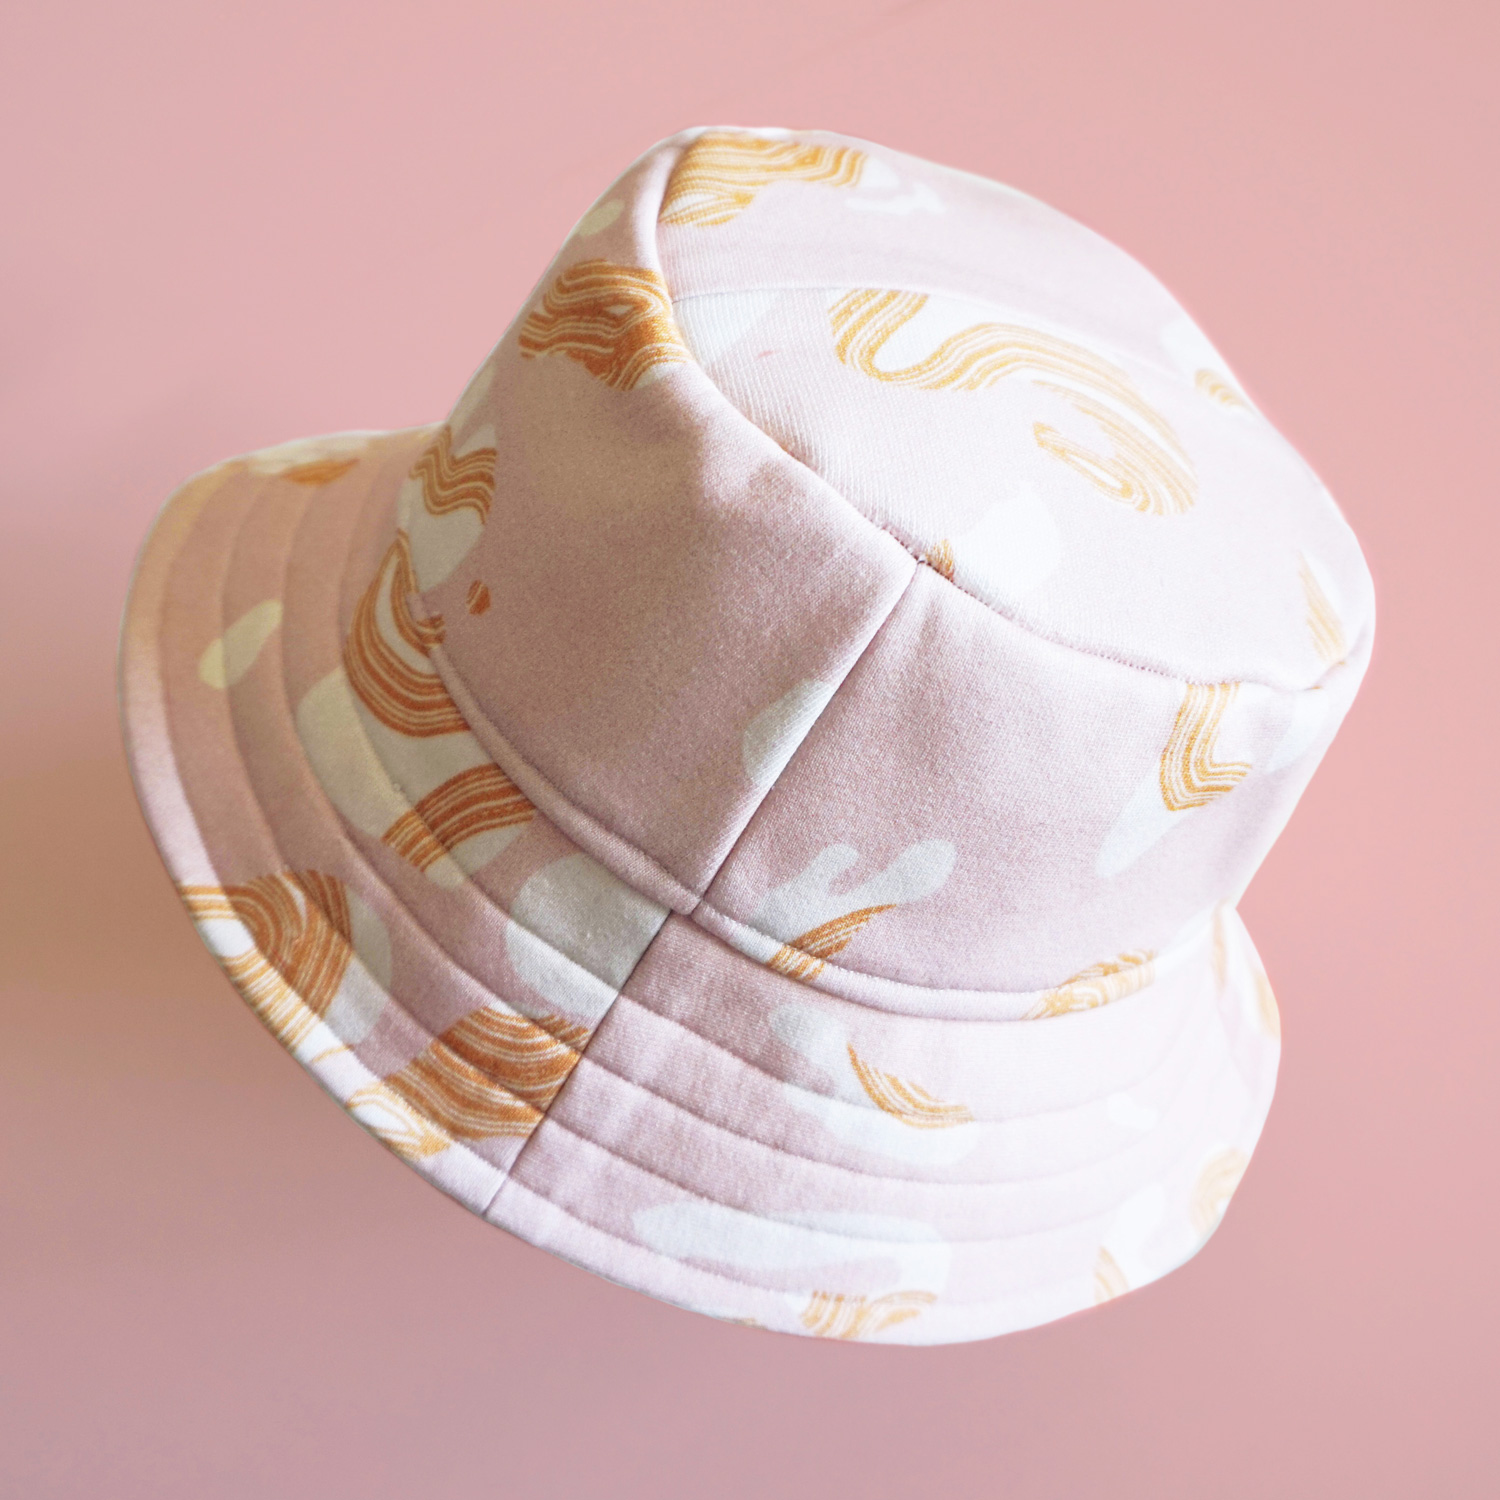 A fun swirly patterned bucket hat that will protect you from the sun in a stylish way.